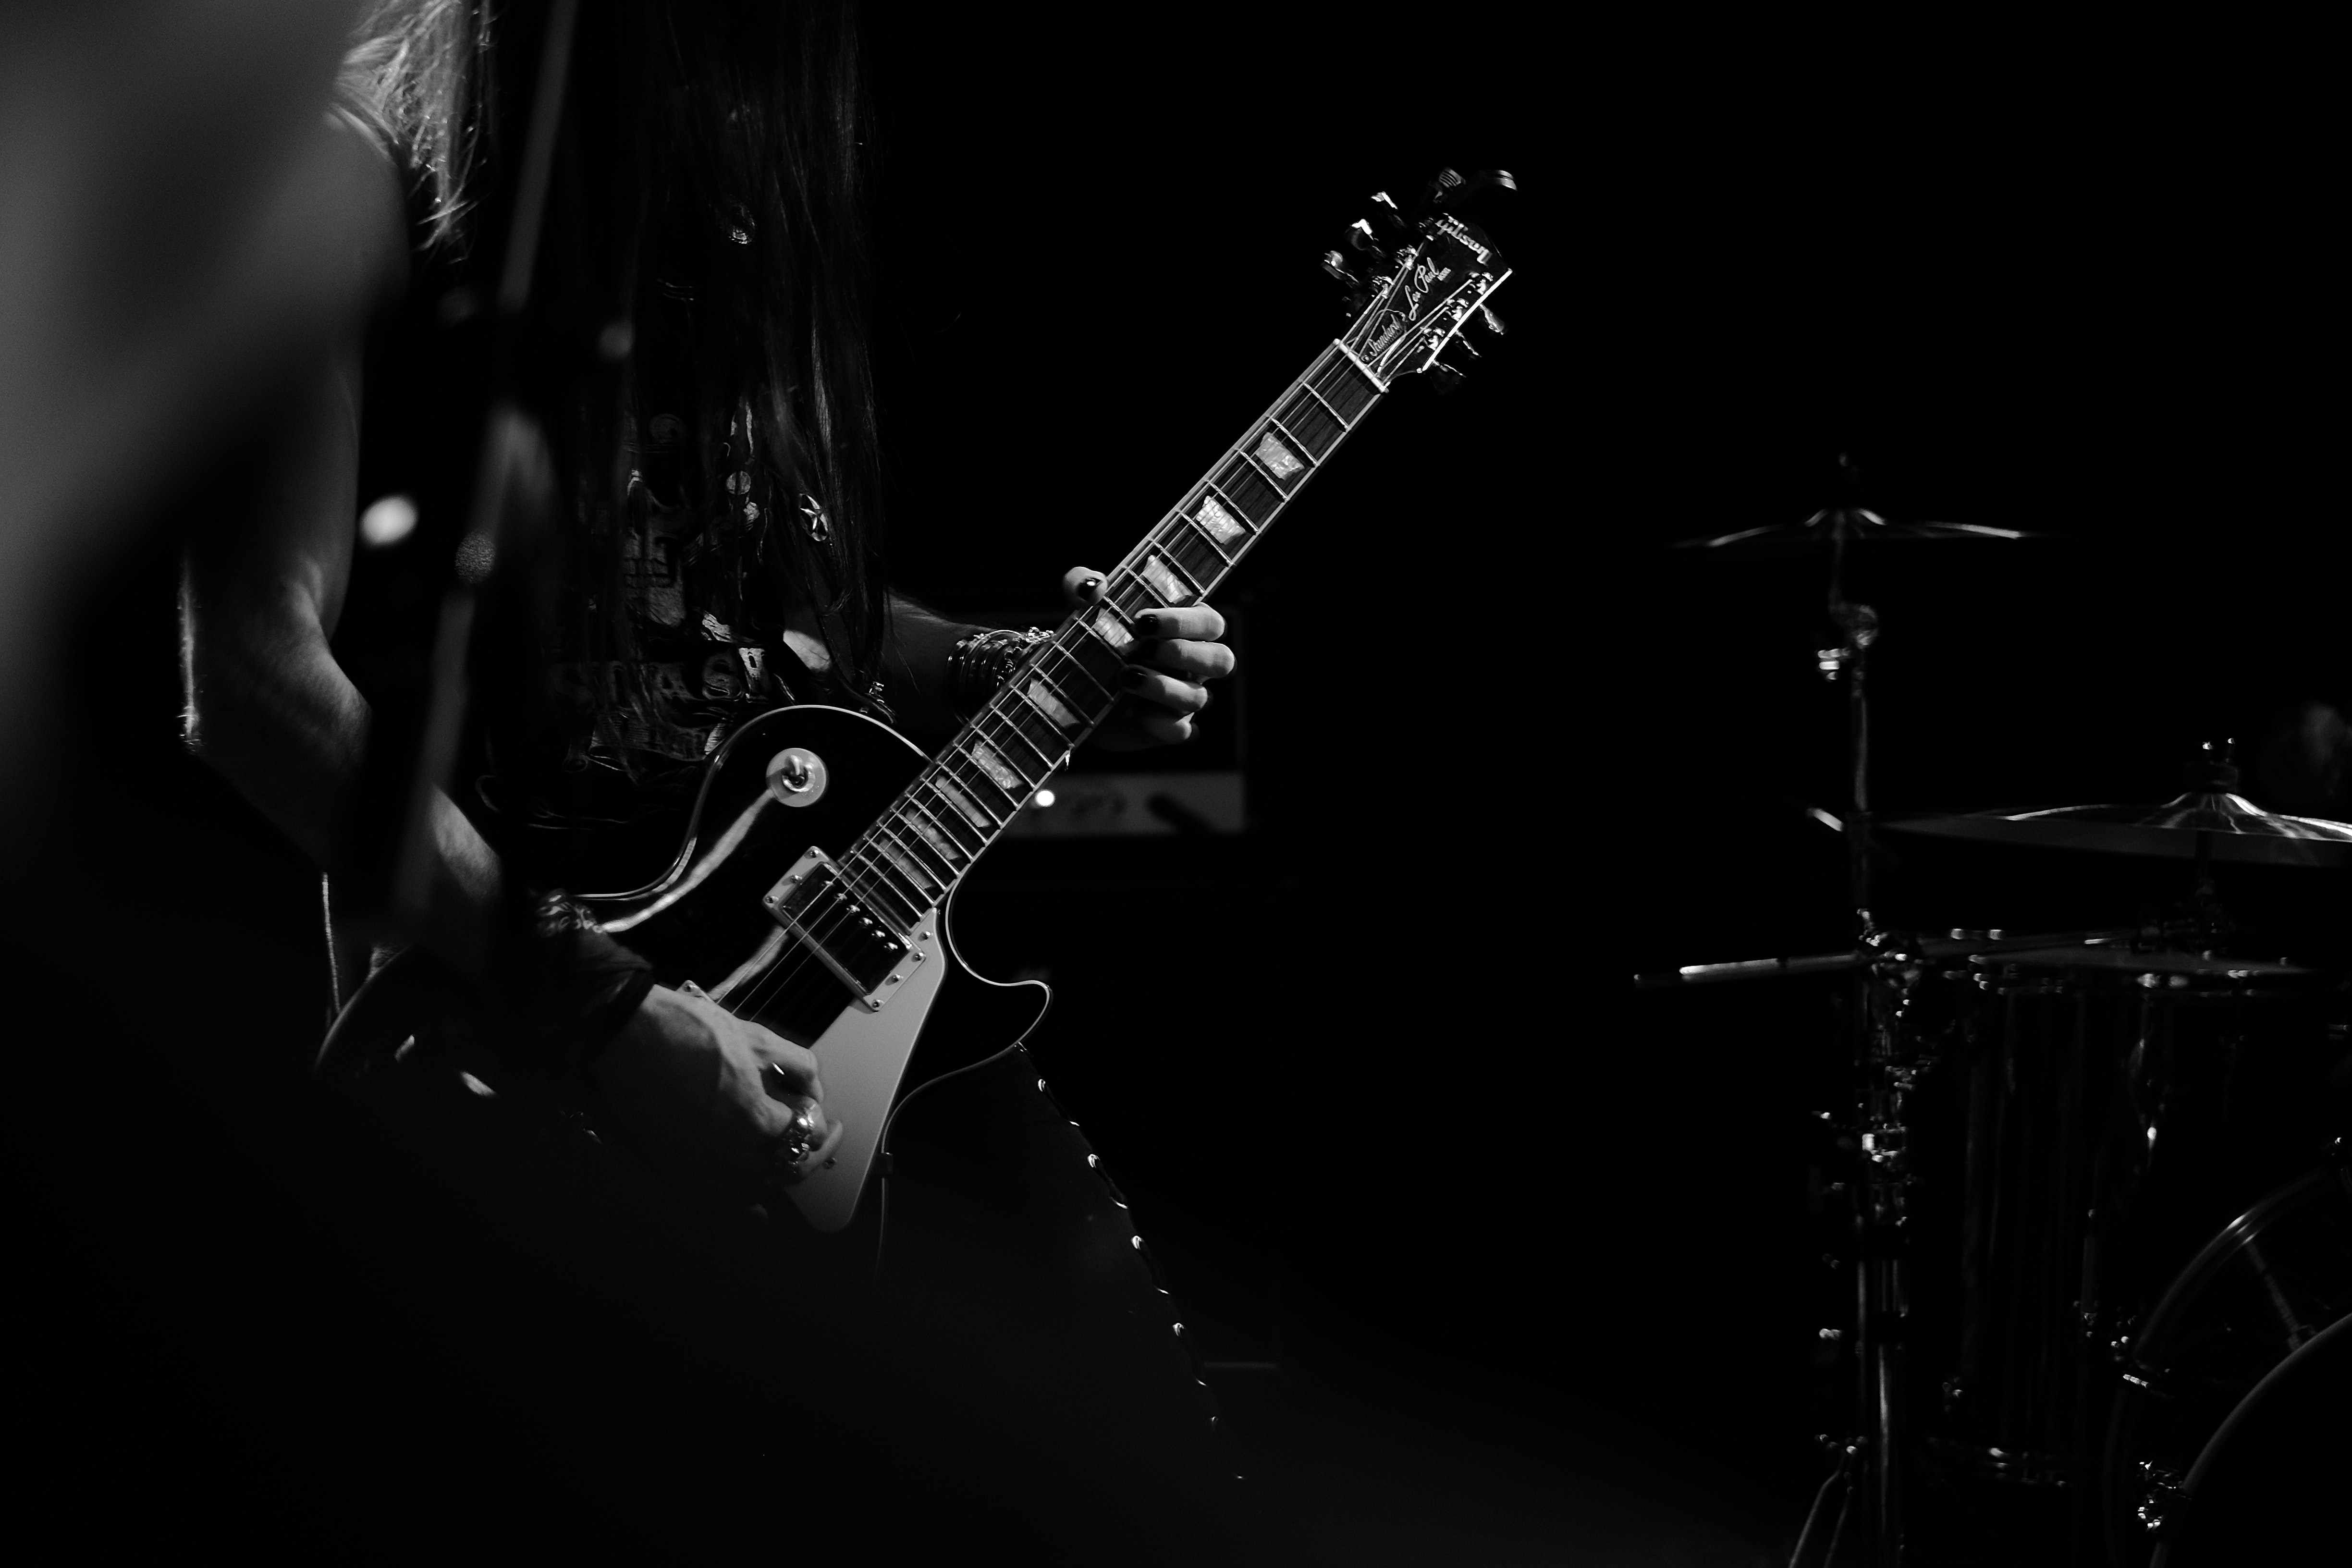 A black-and-white shot of a bass guitarist on stage